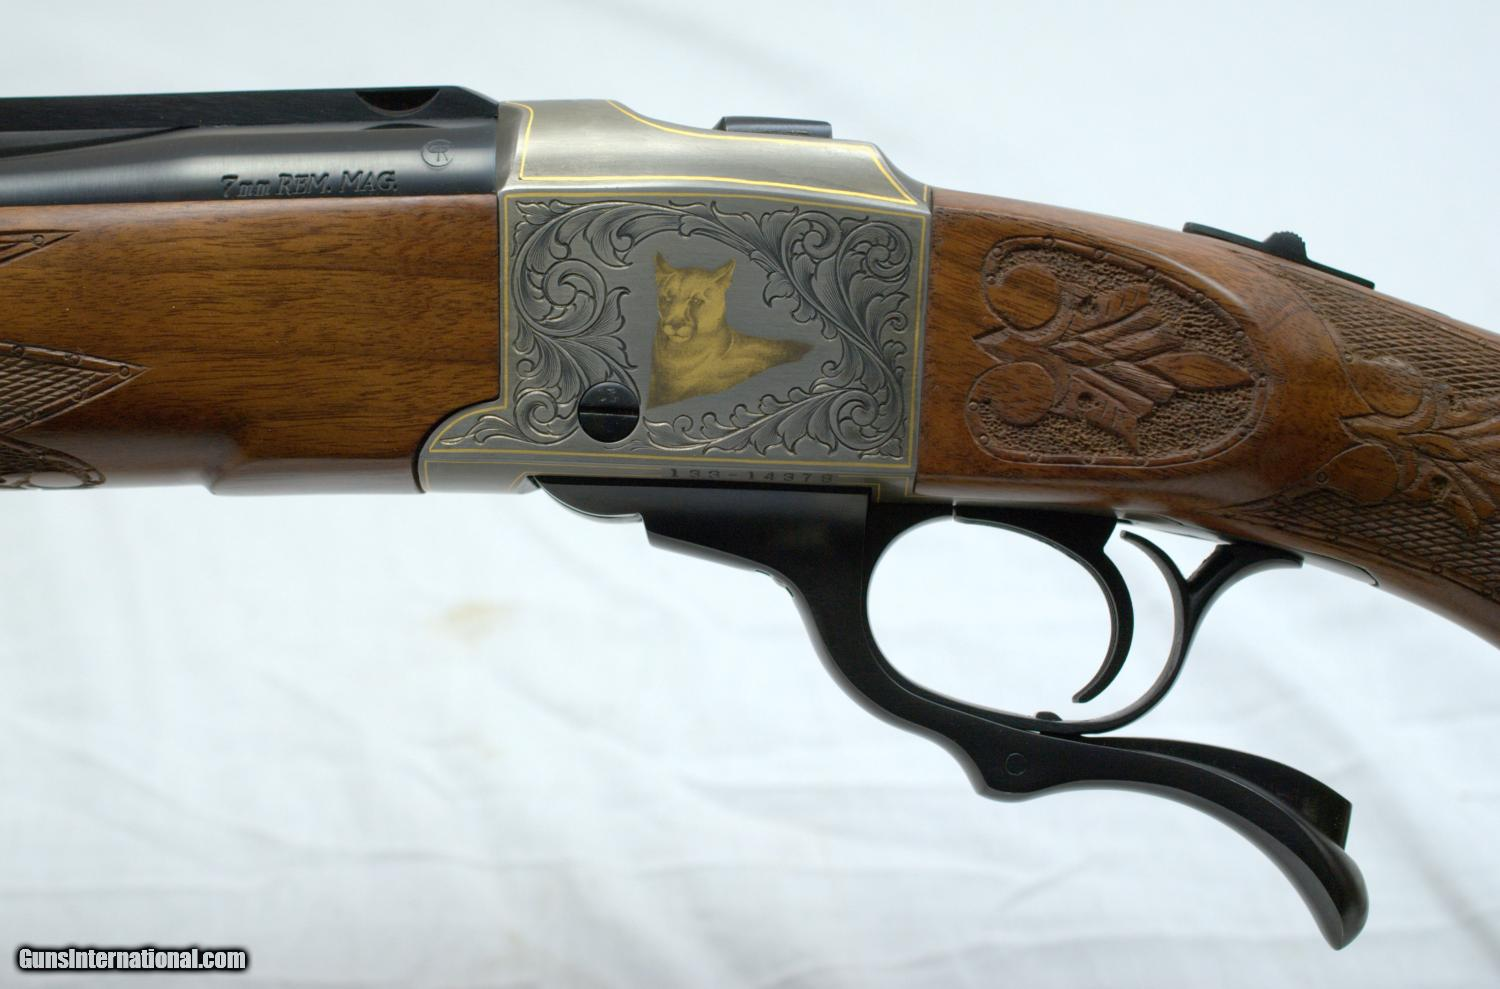 Classic Guns The Sweet Ruger No. 1 Rifle